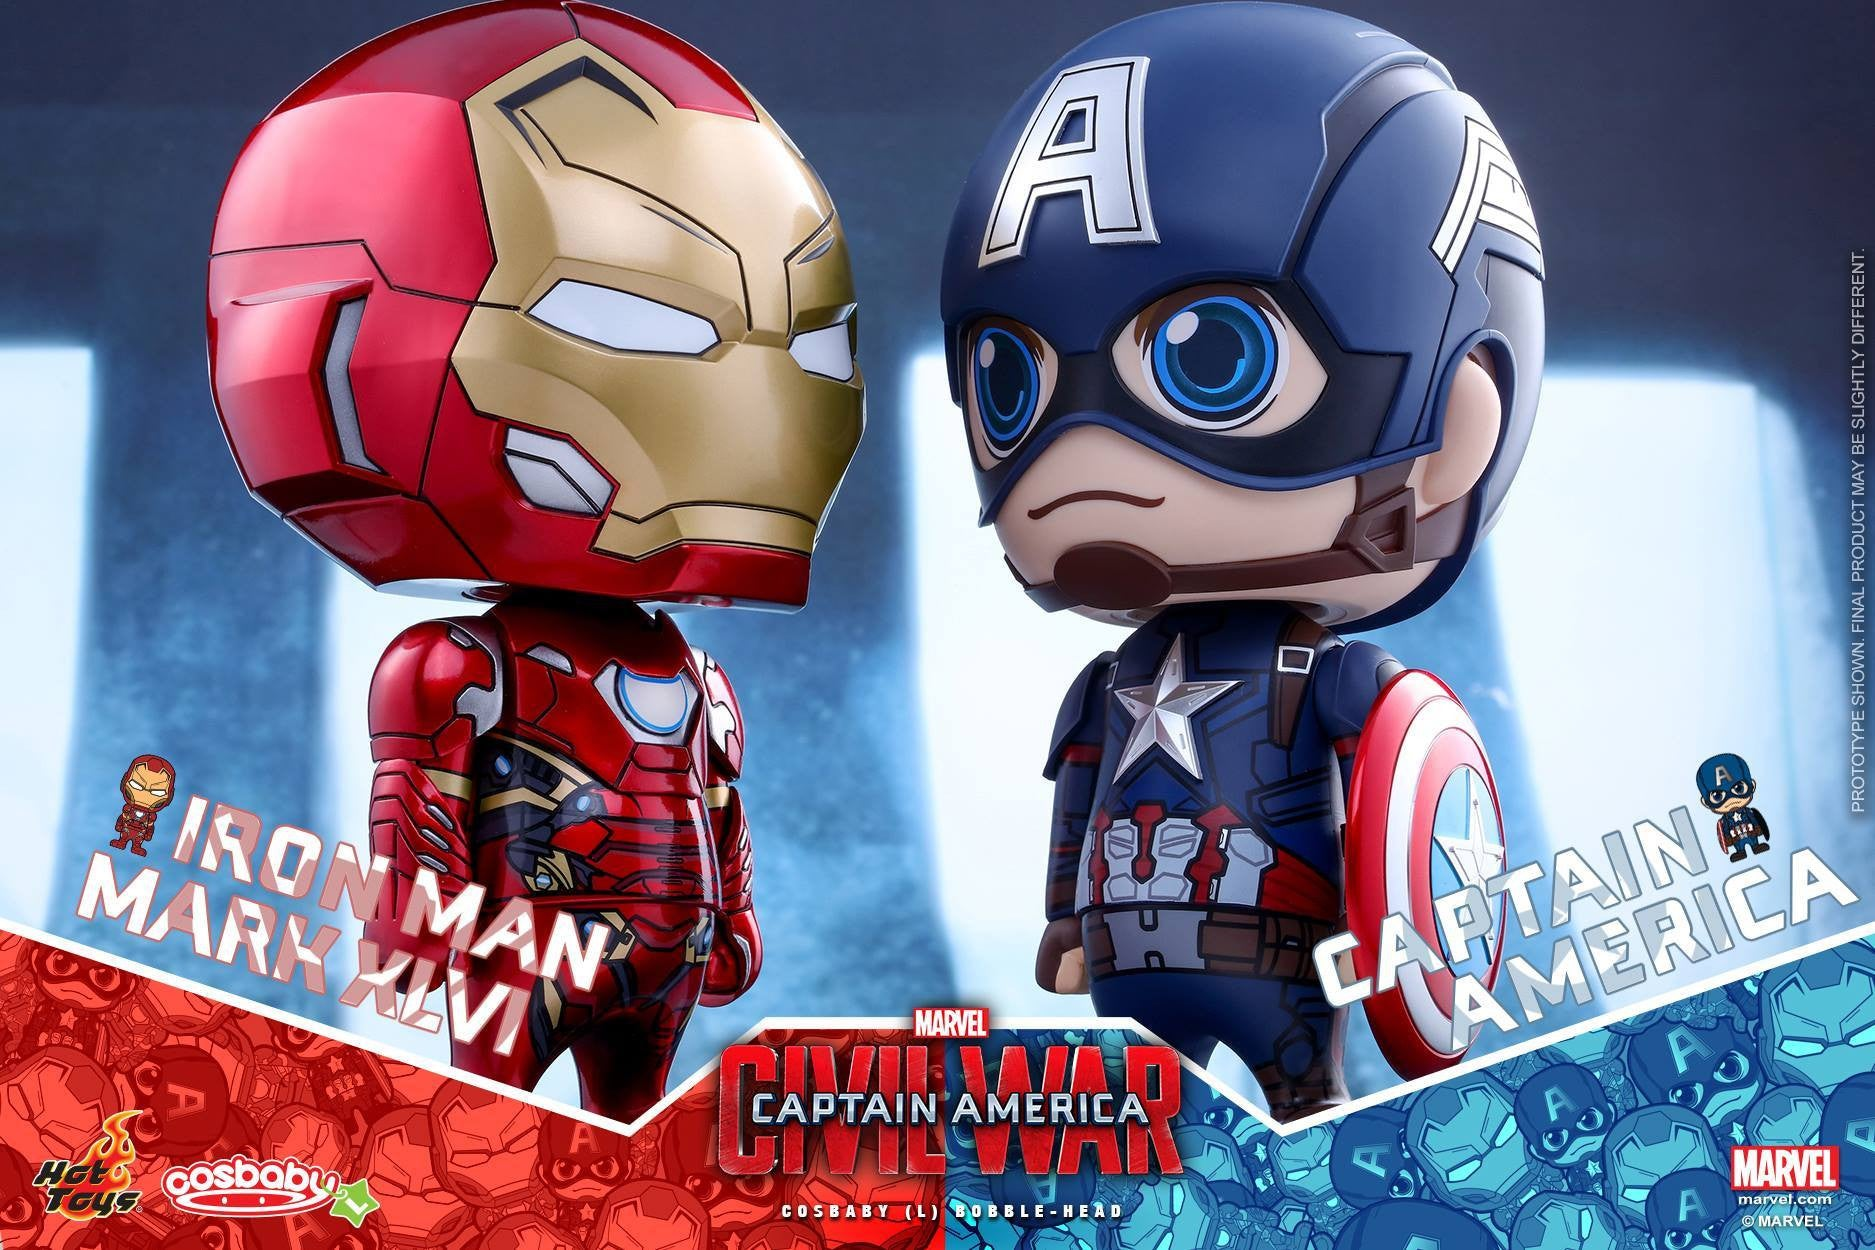 Hot Toys - COSB324 - Captain America: Civil War - Iron Man Mark XLVI Cosbaby (L) Bobble-Head - Marvelous Toys - 3